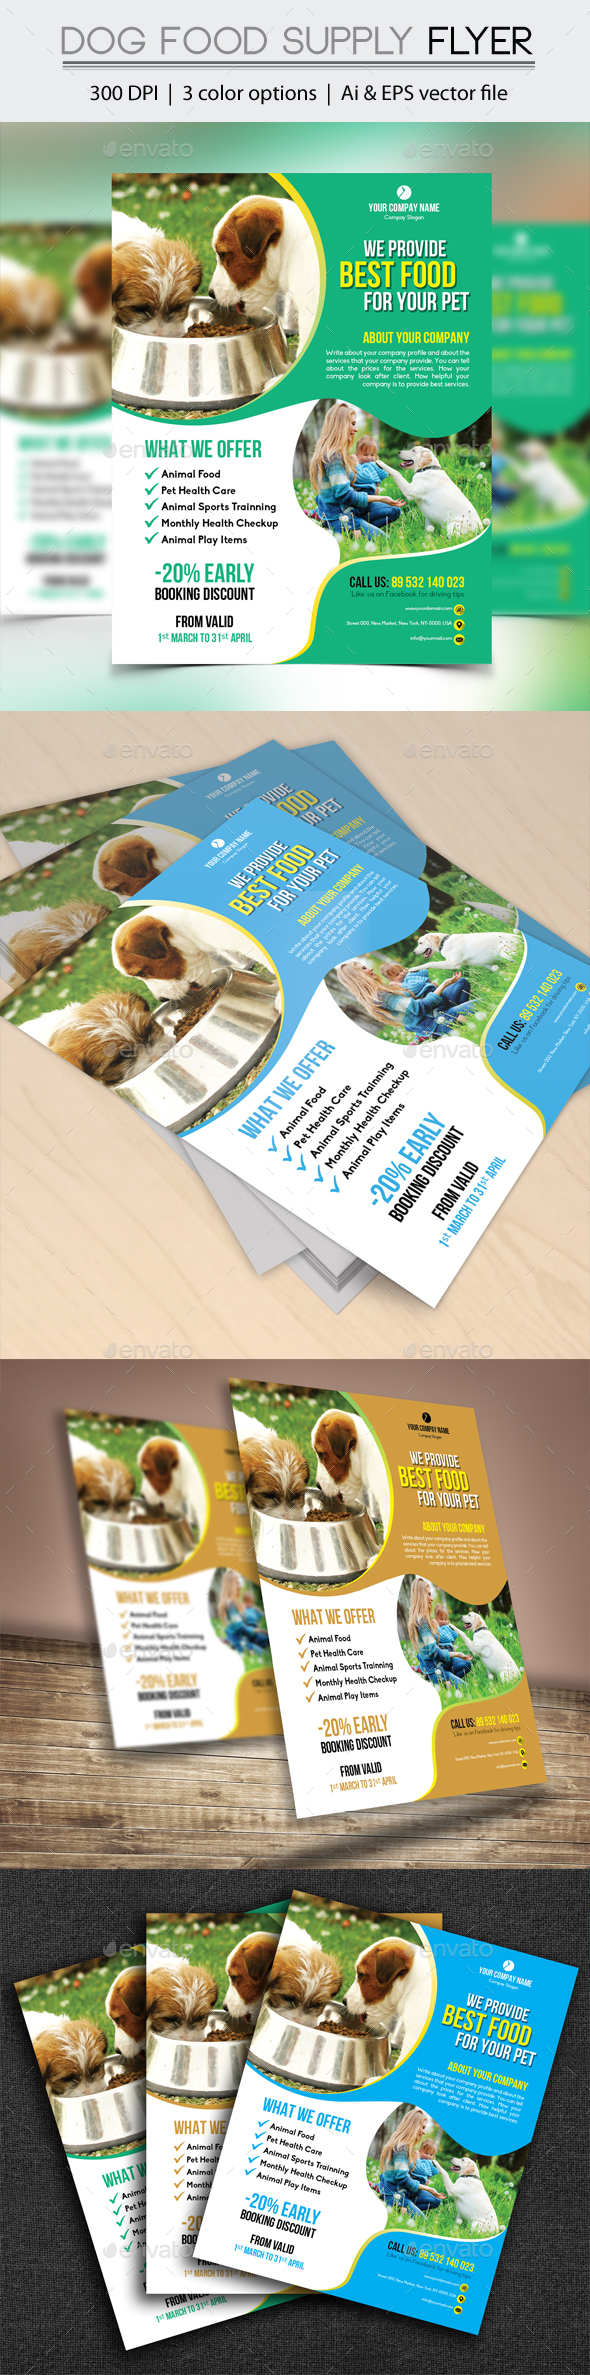 Dog Food Supply Flyer - Flyers Print Templates